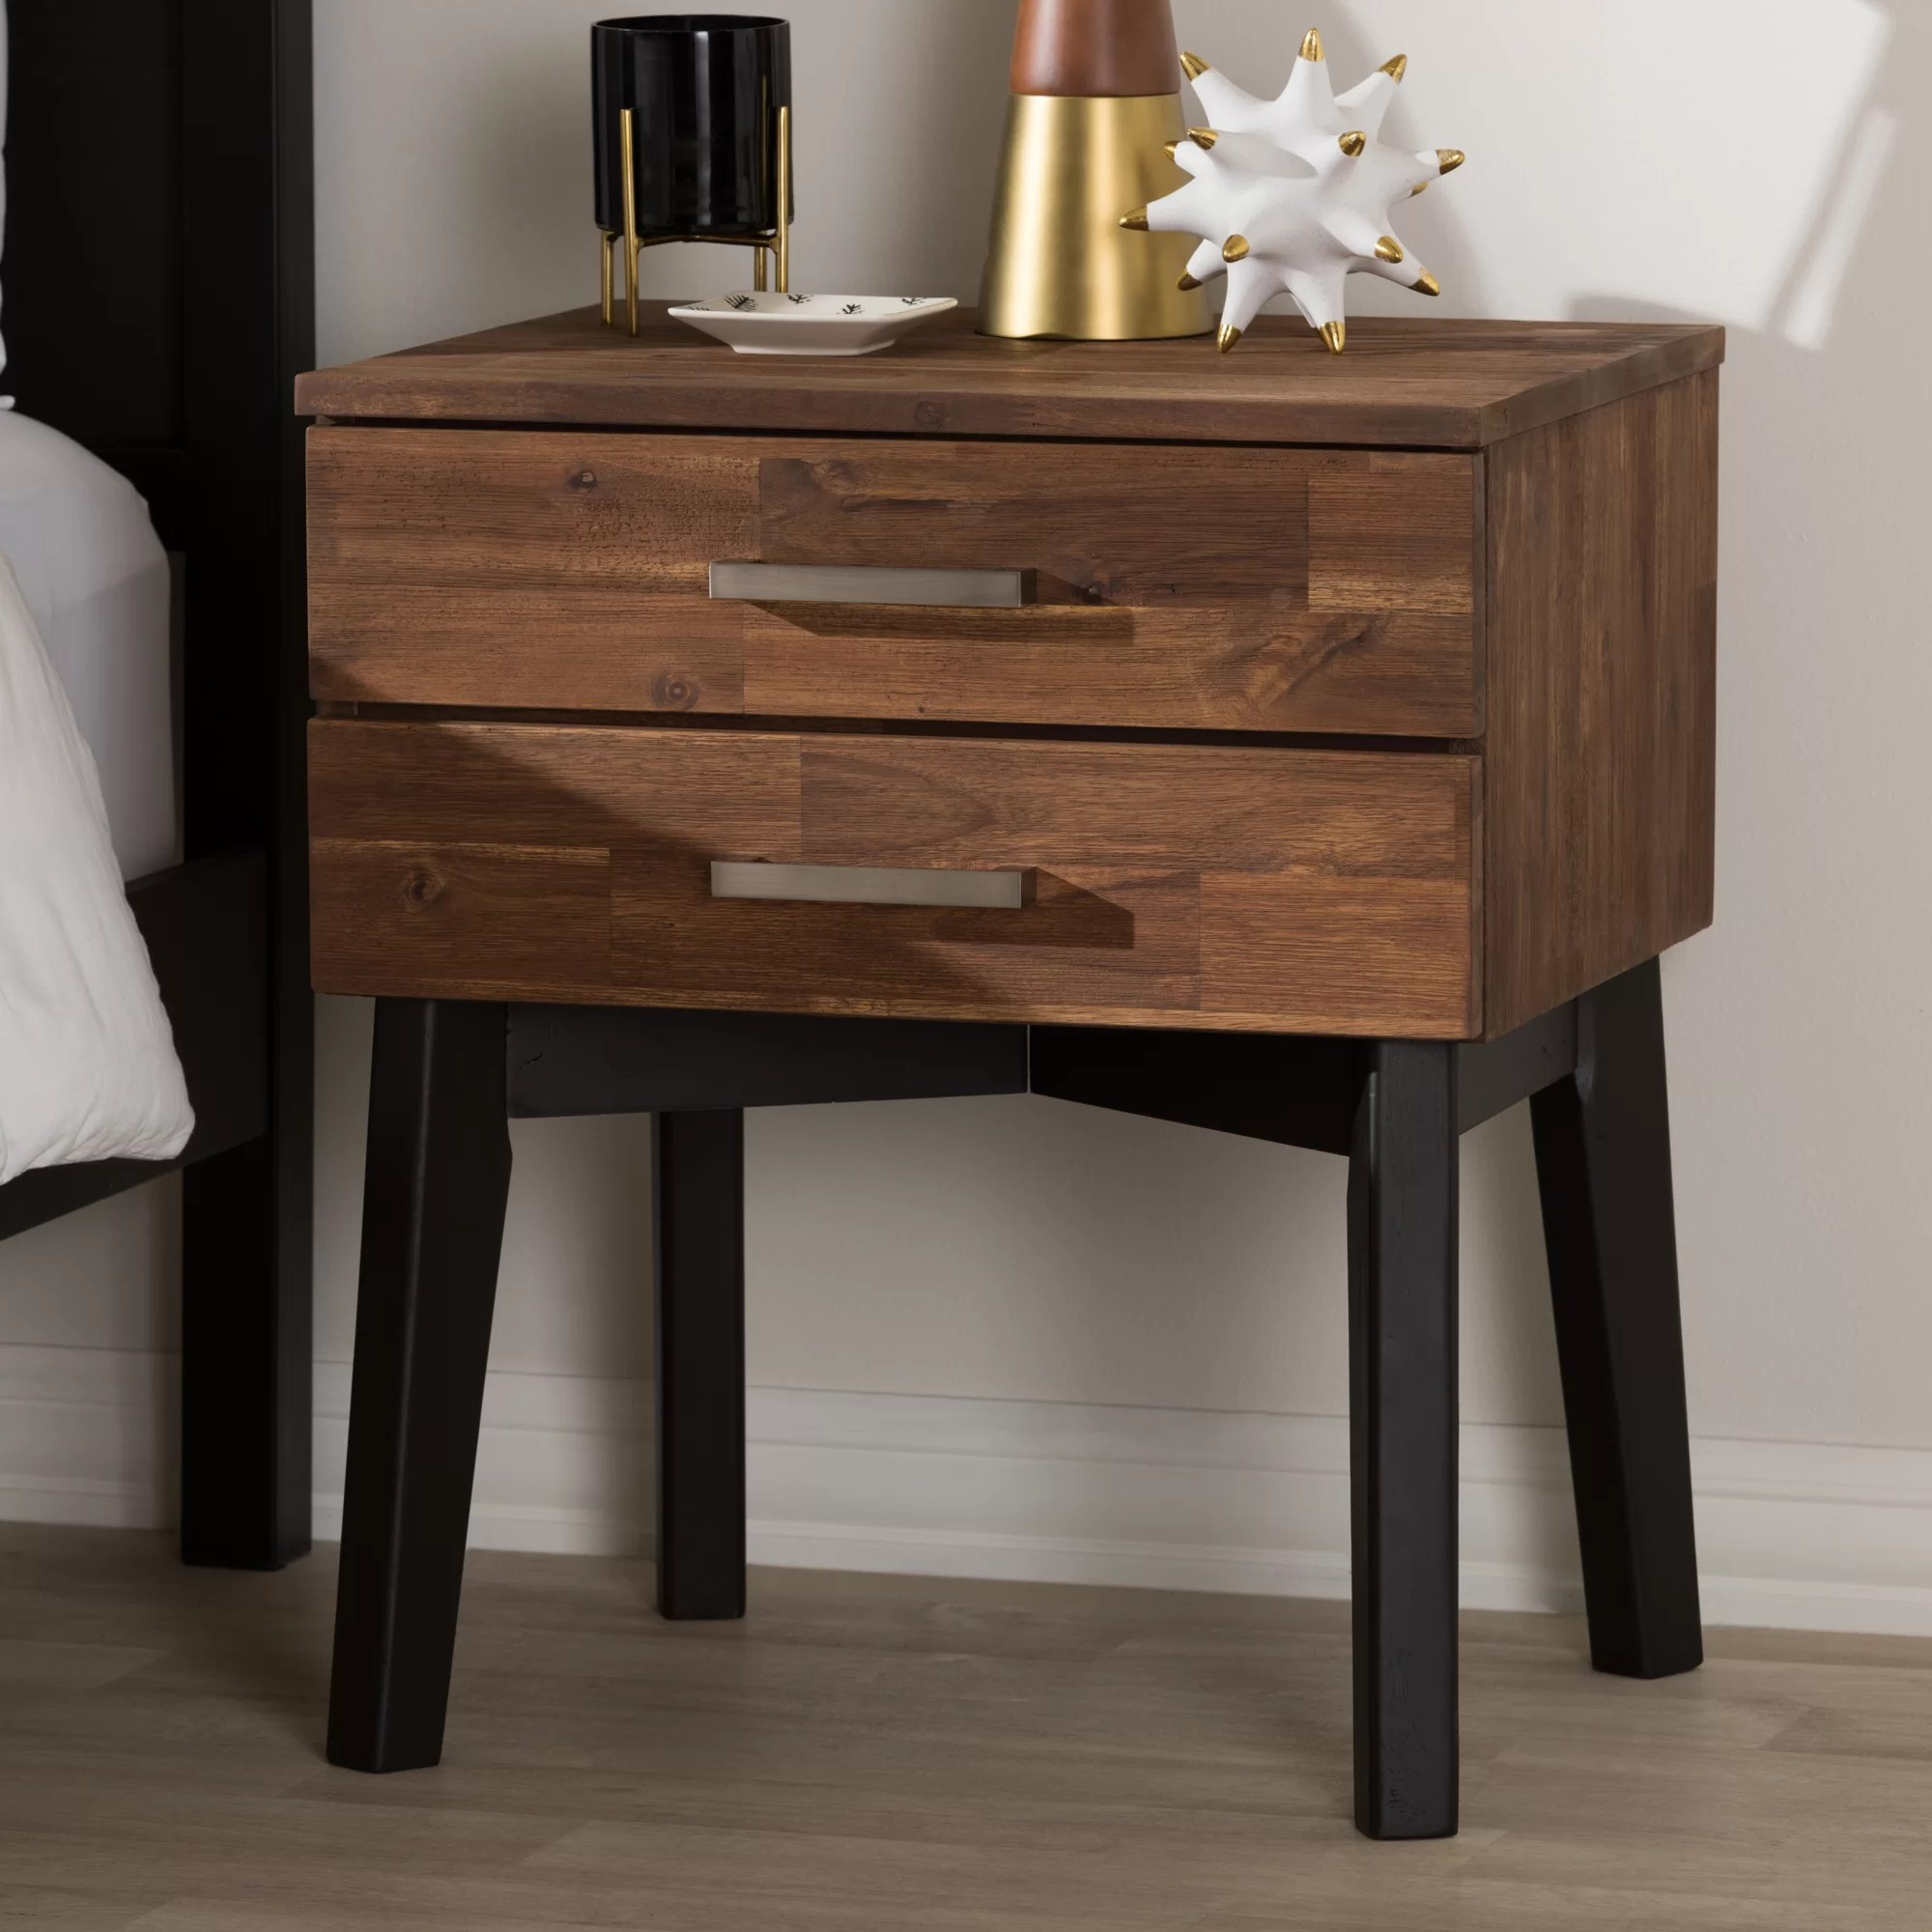 Bilokur 2 Drawer Wood Nightstand